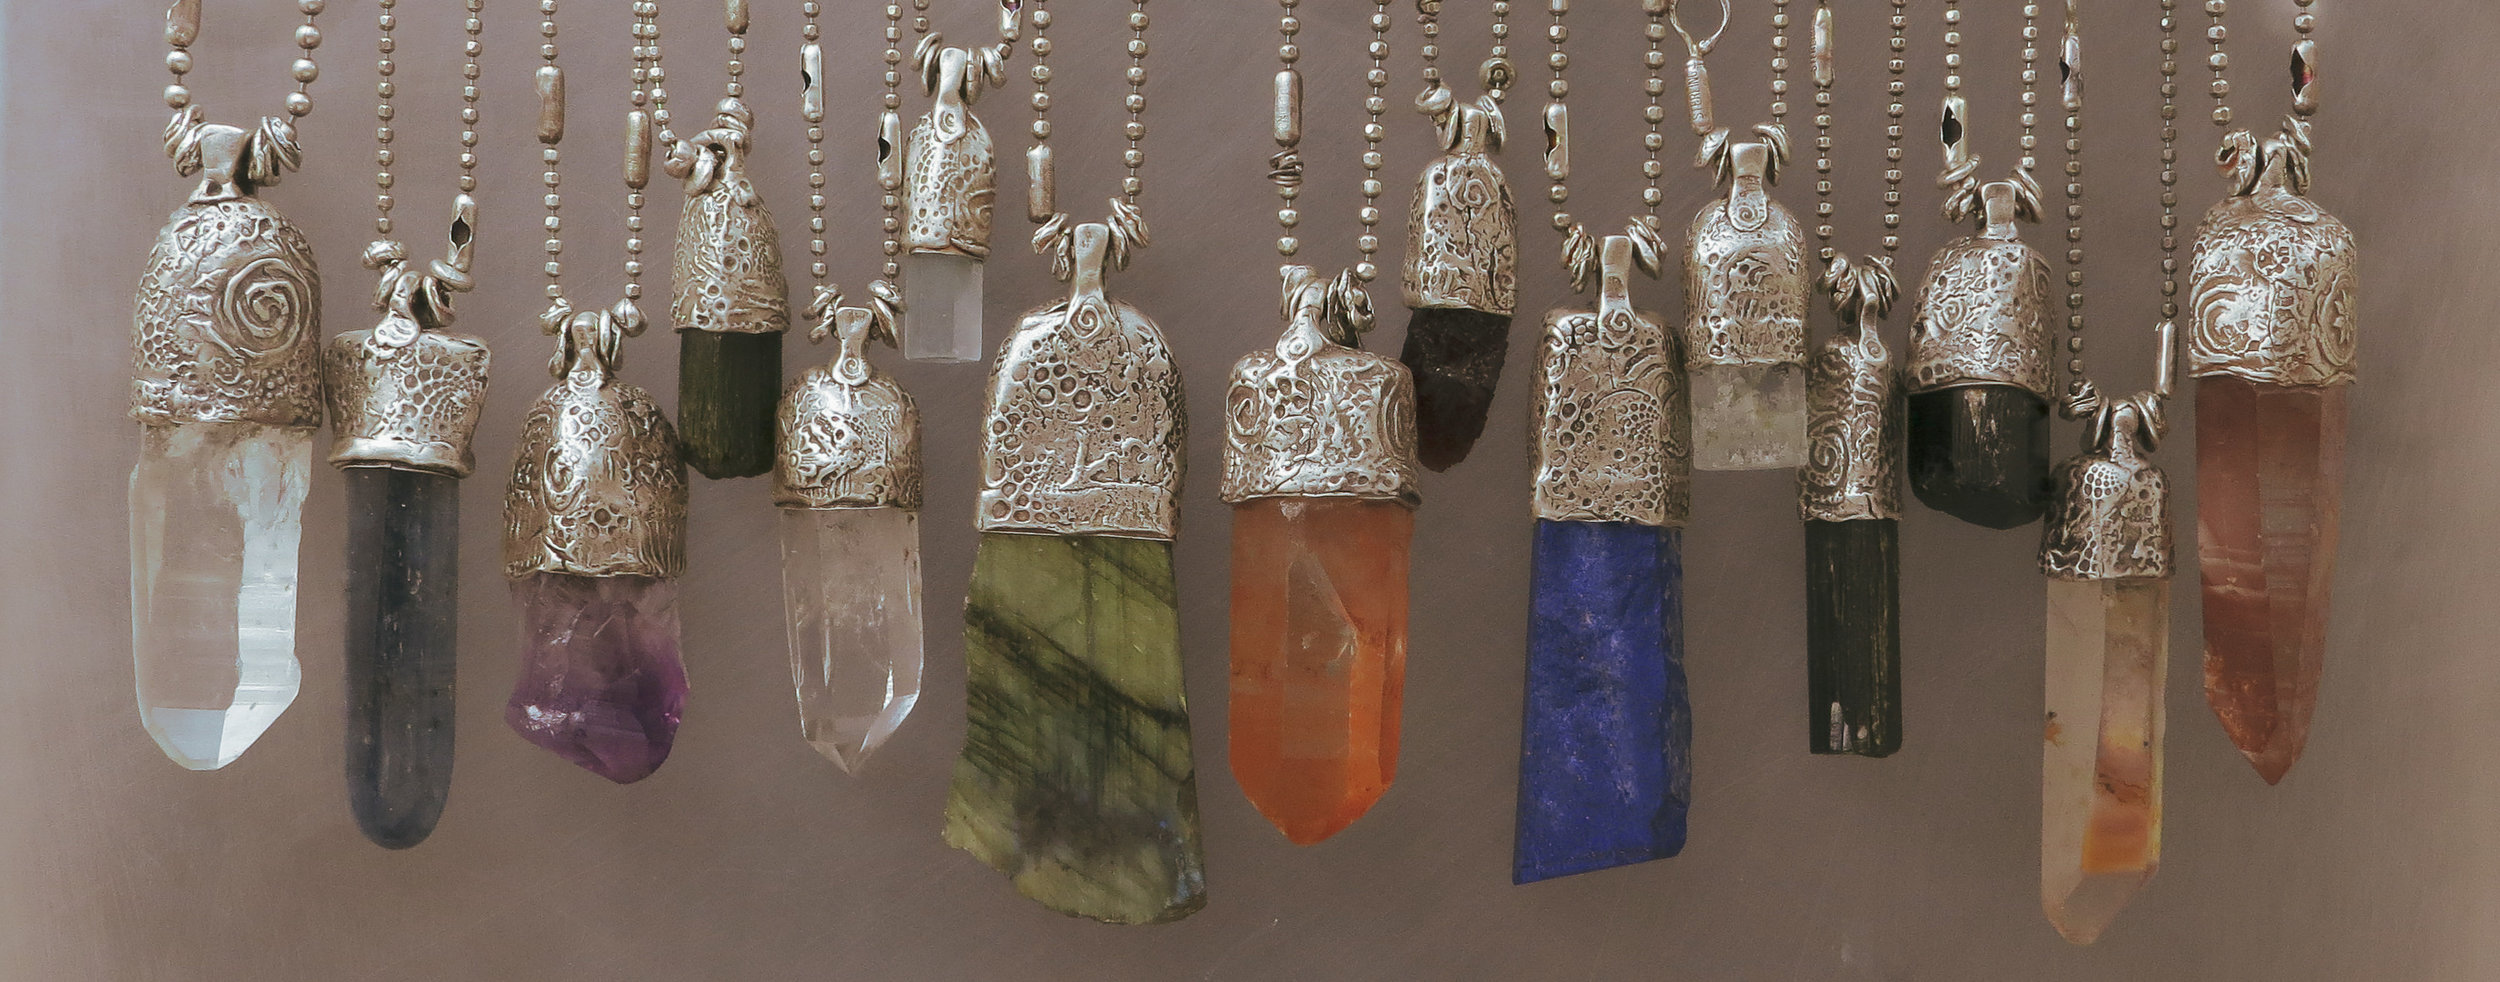 capped crystal talismans collection kathy van kleeck